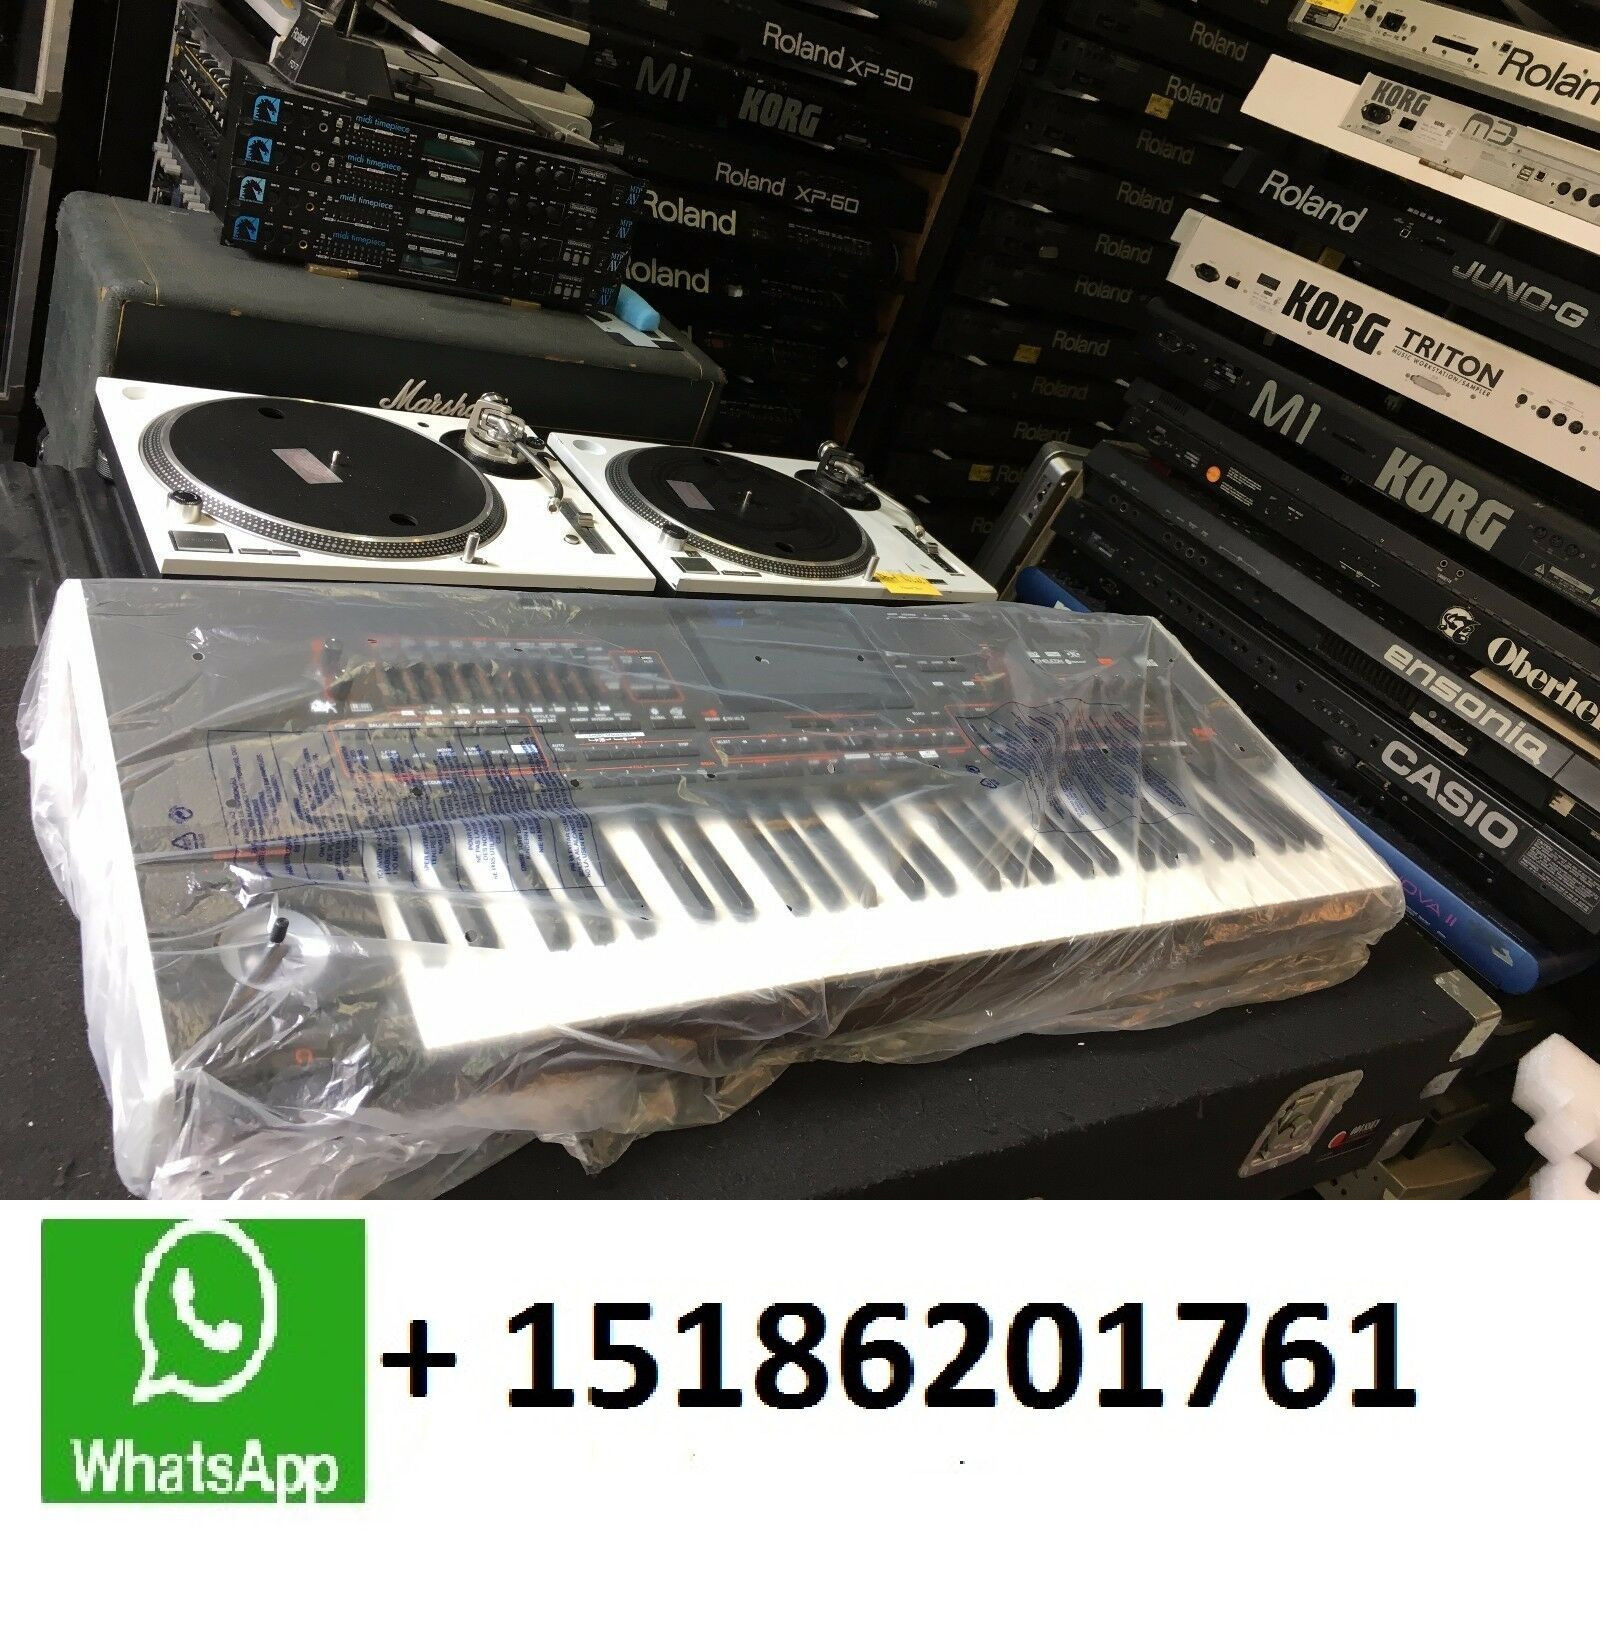 Korg PA800 Pa700 For New Korg PA800 Pa700 Oriental 61-key Arranger